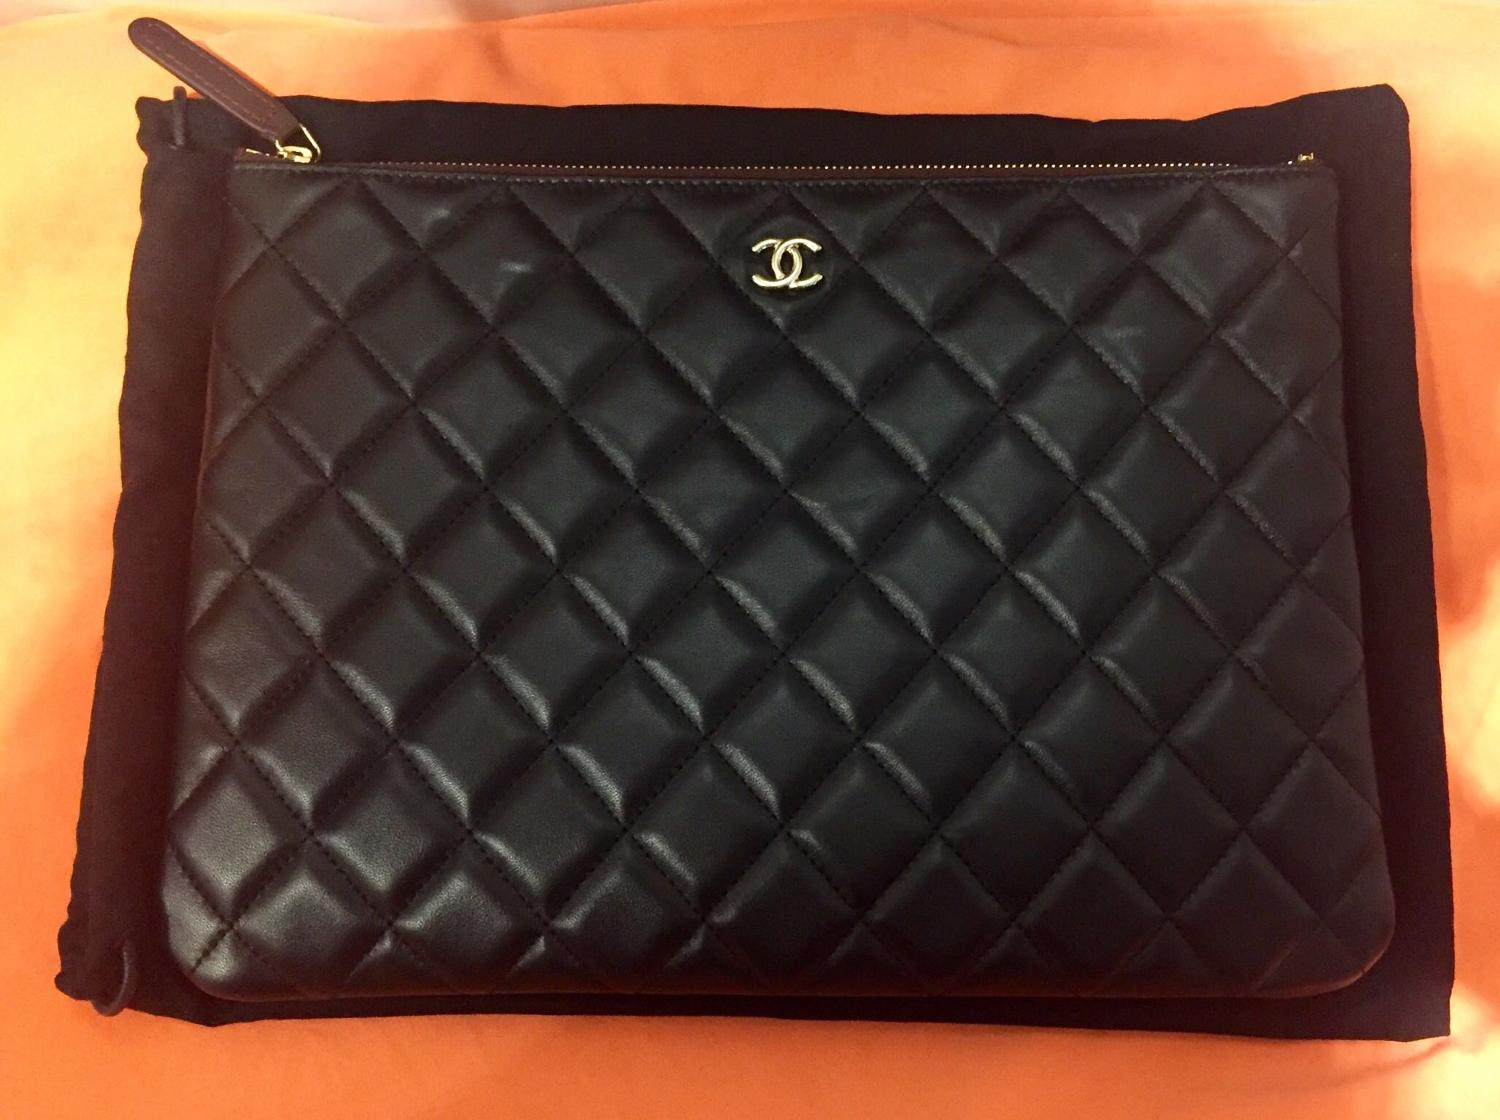 72c79cbbfac1 Find more Authentic Brand New Chanel Clutch   Purse for sale at up ...